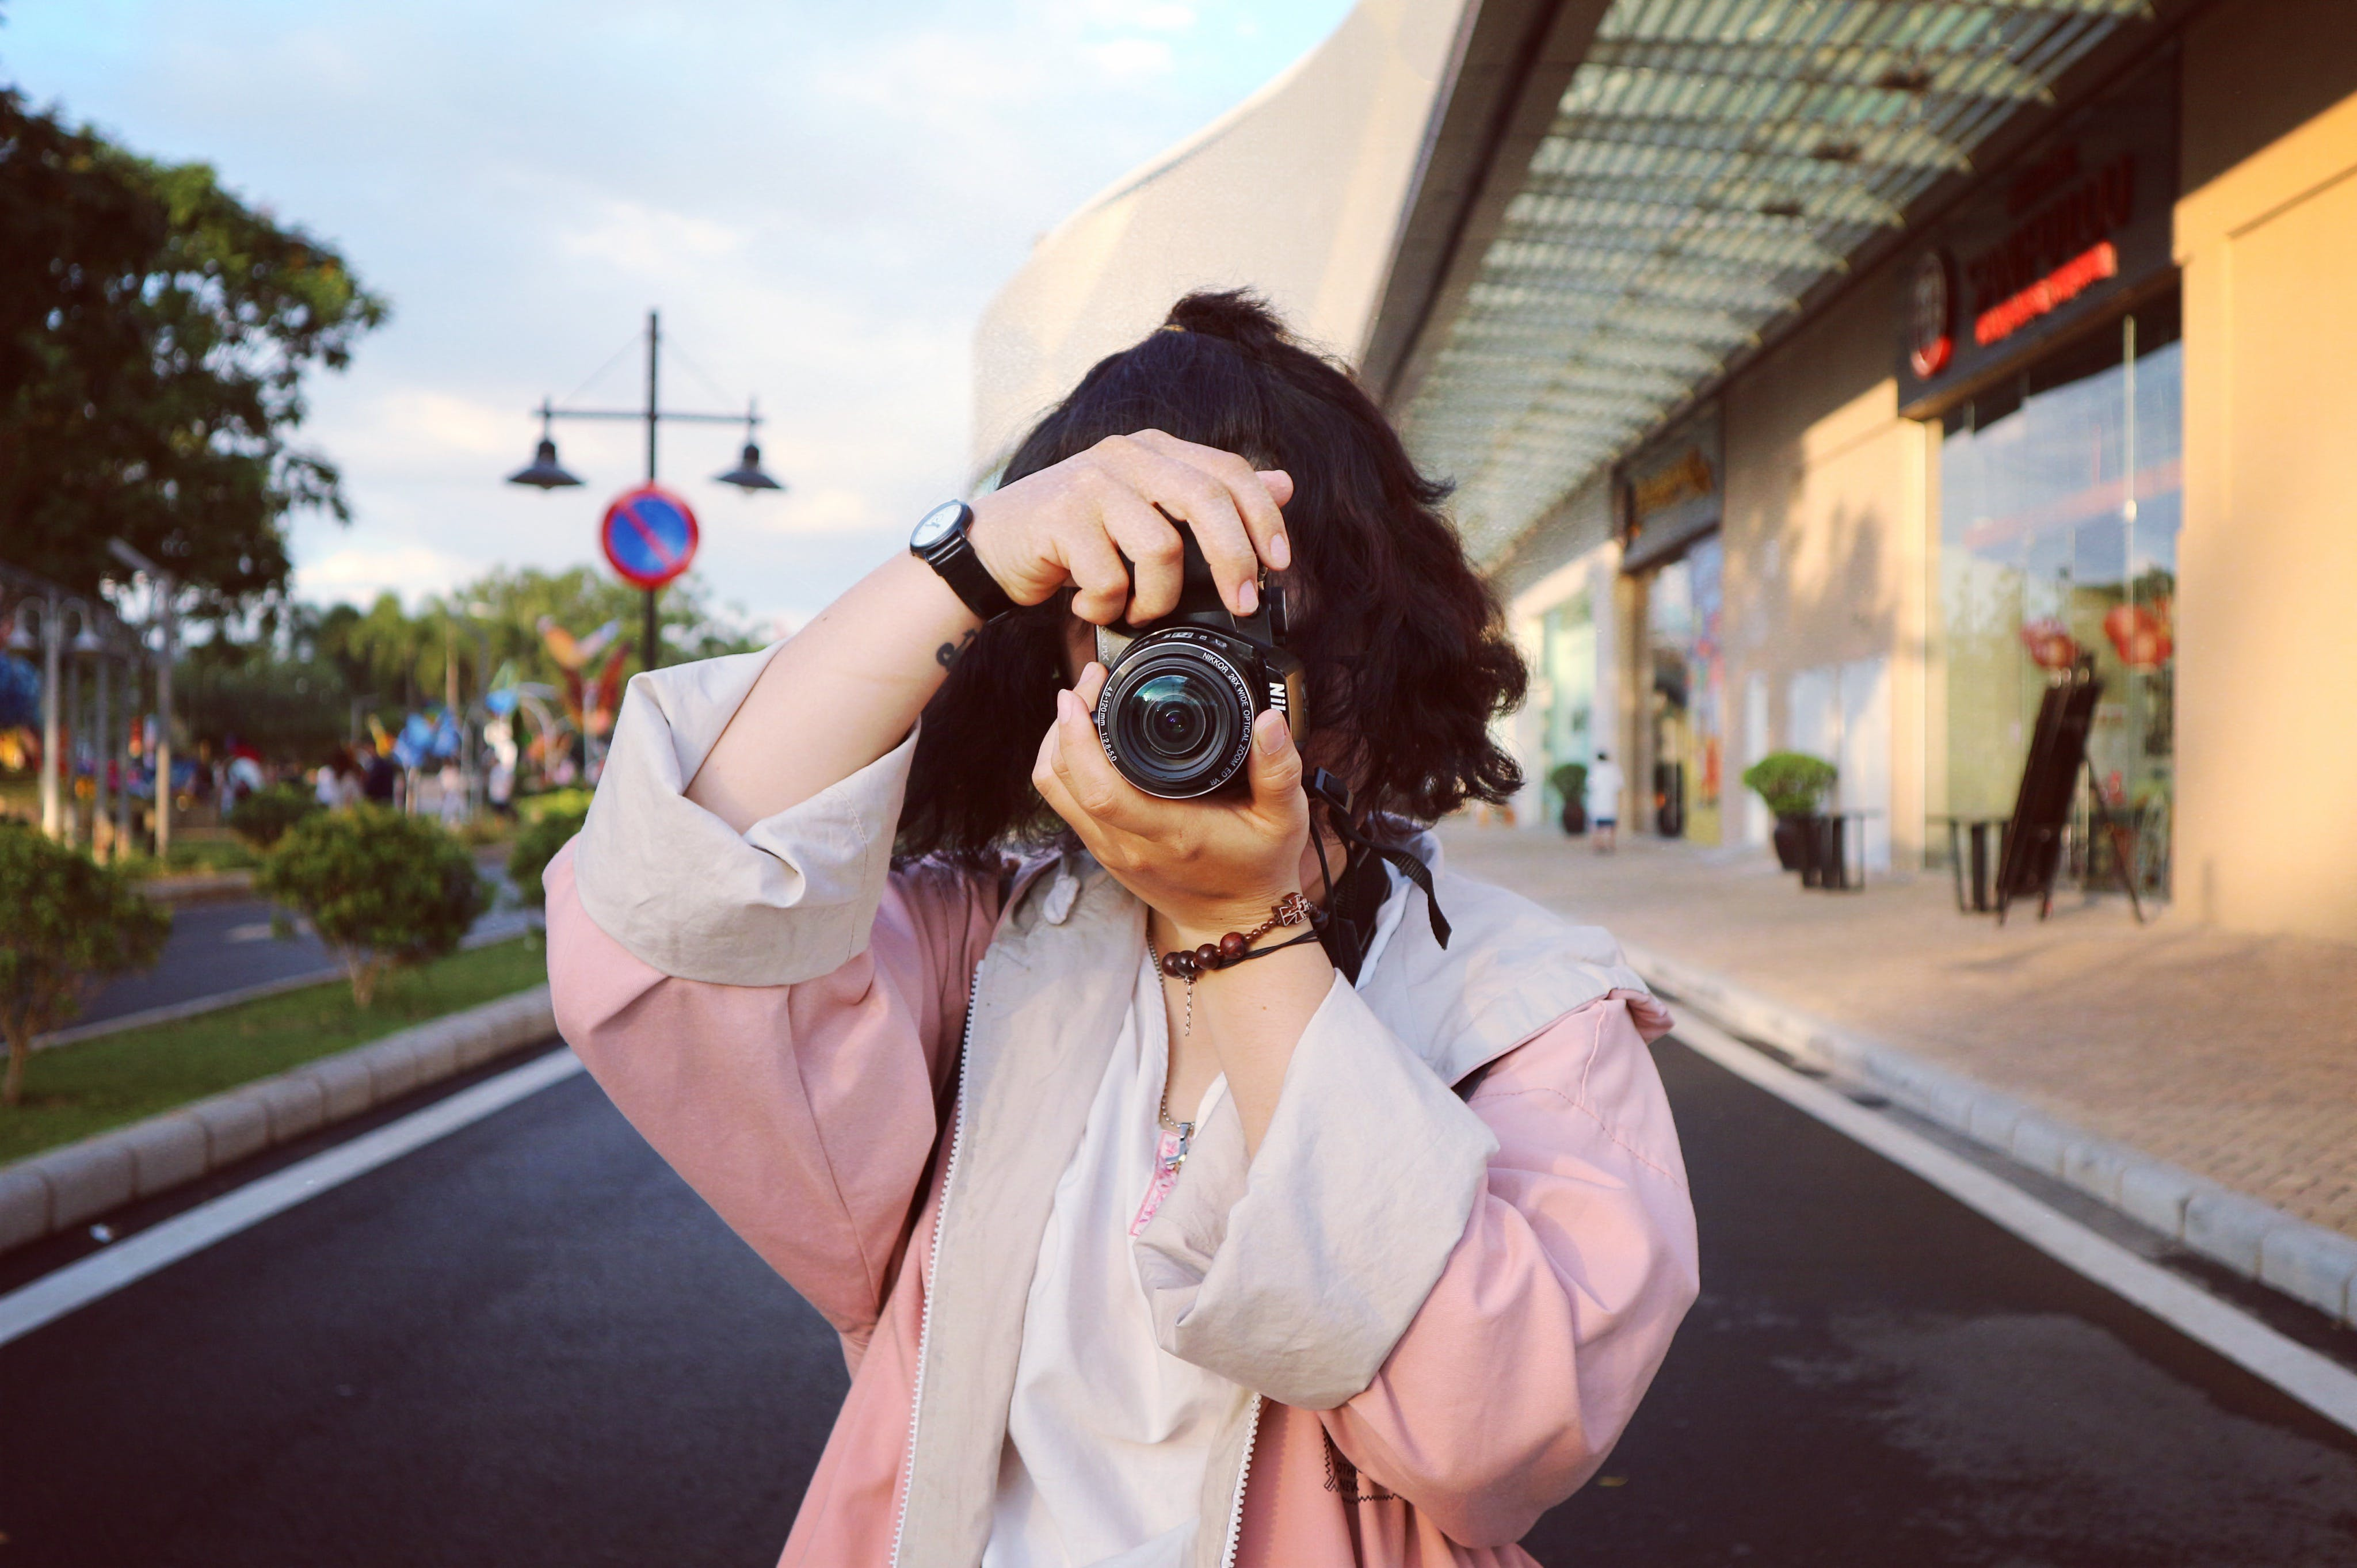 Woman Wearing Pink Coat Holding Dslr Camera